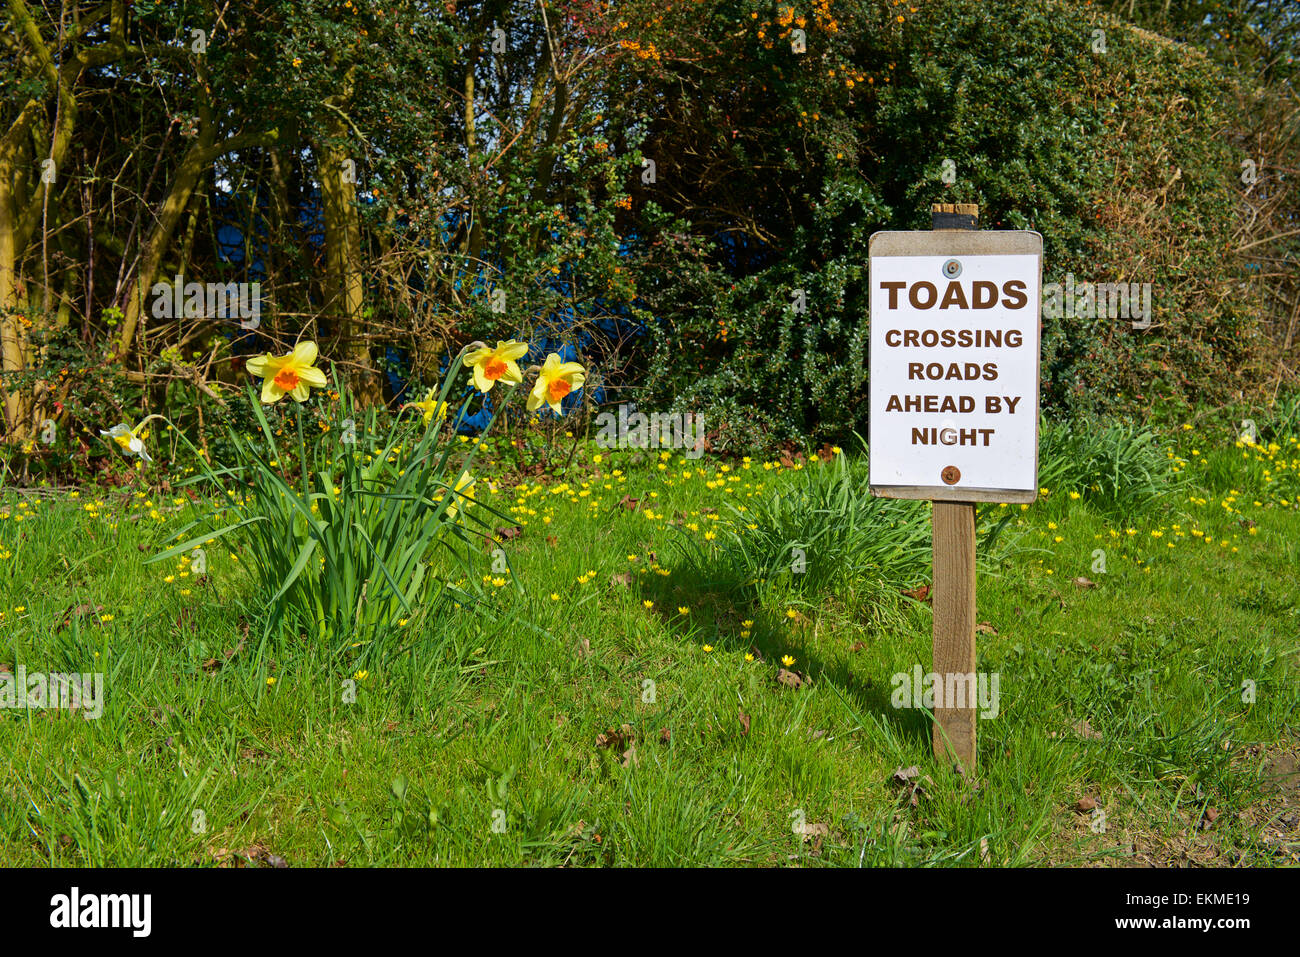 Sign: Toads crossing road ahead by night, England UK - Stock Image